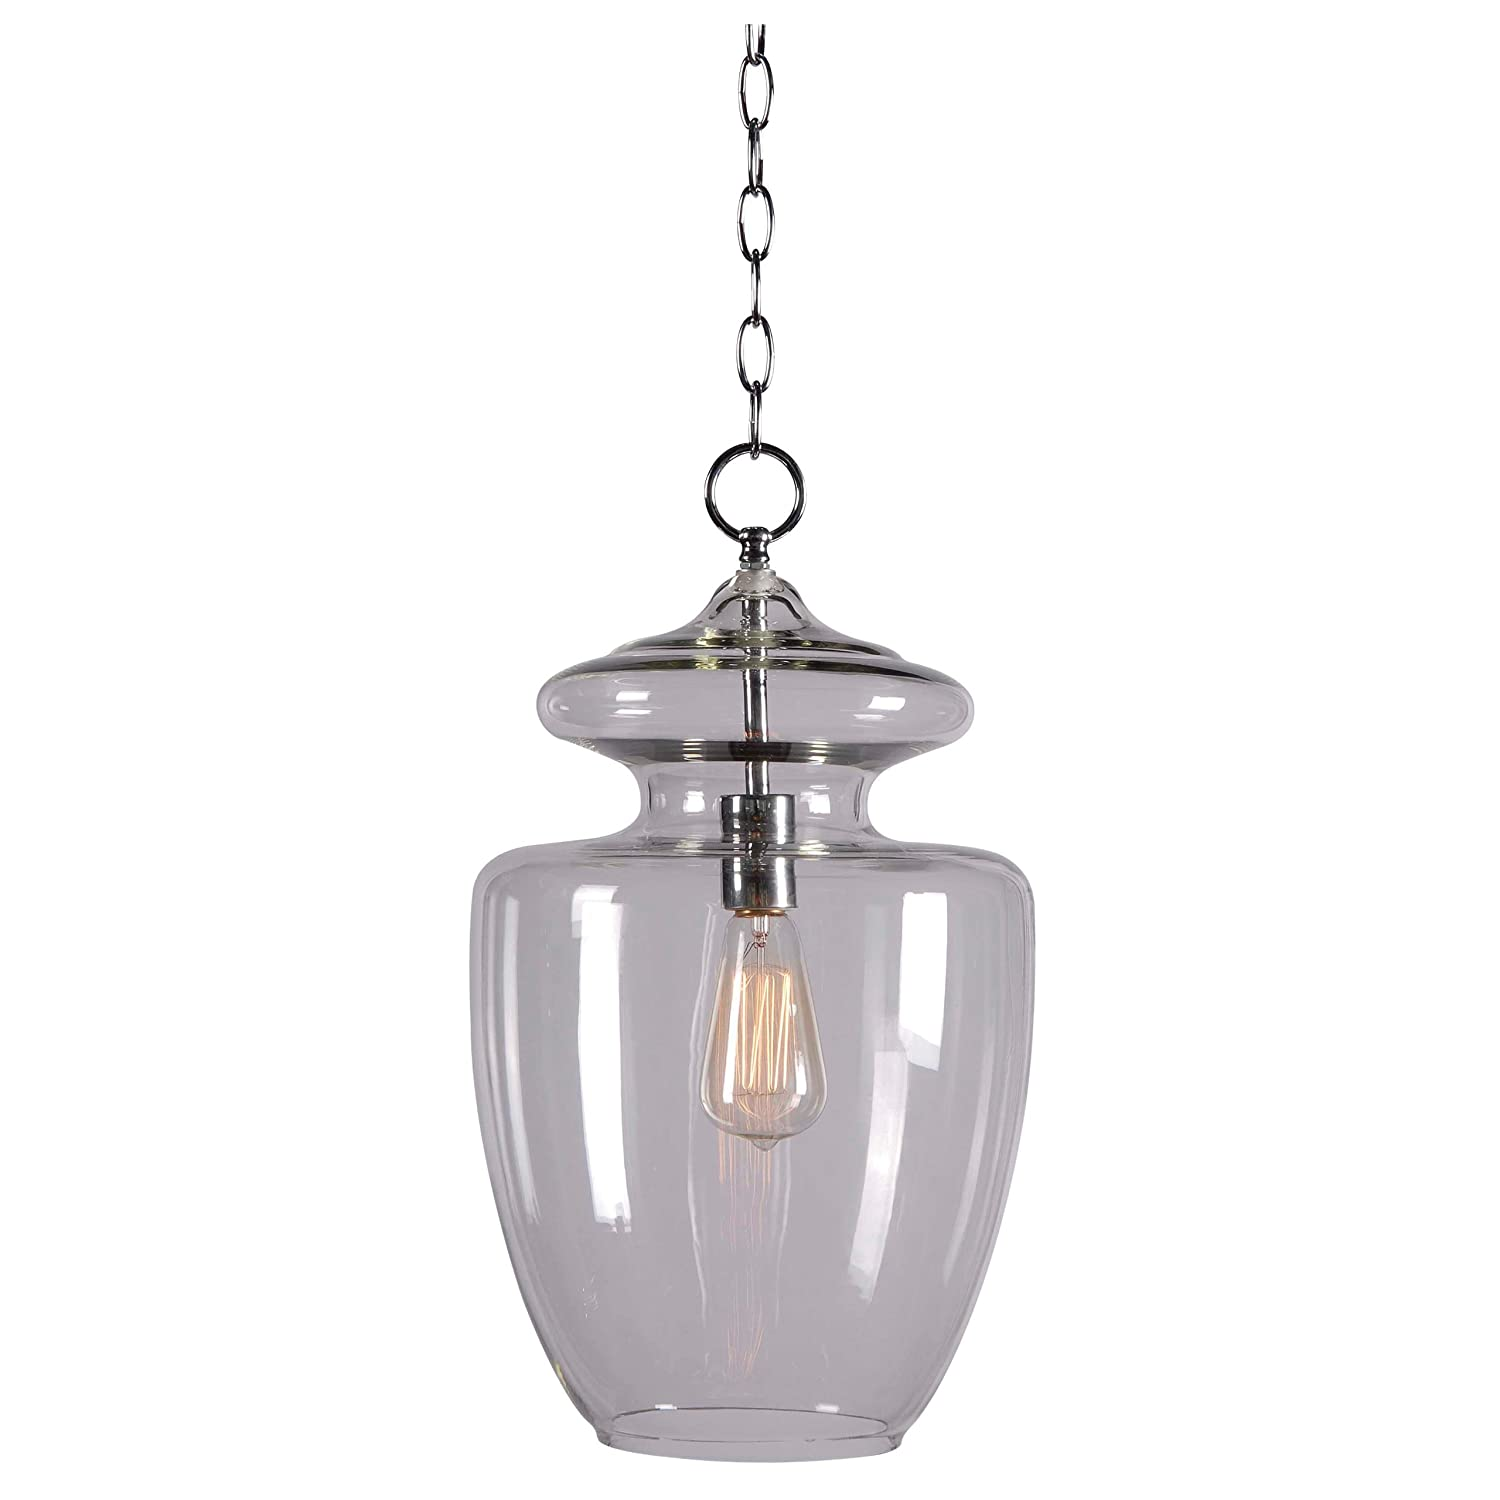 Kenroy Home Kenroy Home 93037CLR Apothecary 1 -Light Pendant - Ceiling  Pendant Fixtures - Amazon.com - Kenroy Home Kenroy Home 93037CLR Apothecary 1 -Light Pendant